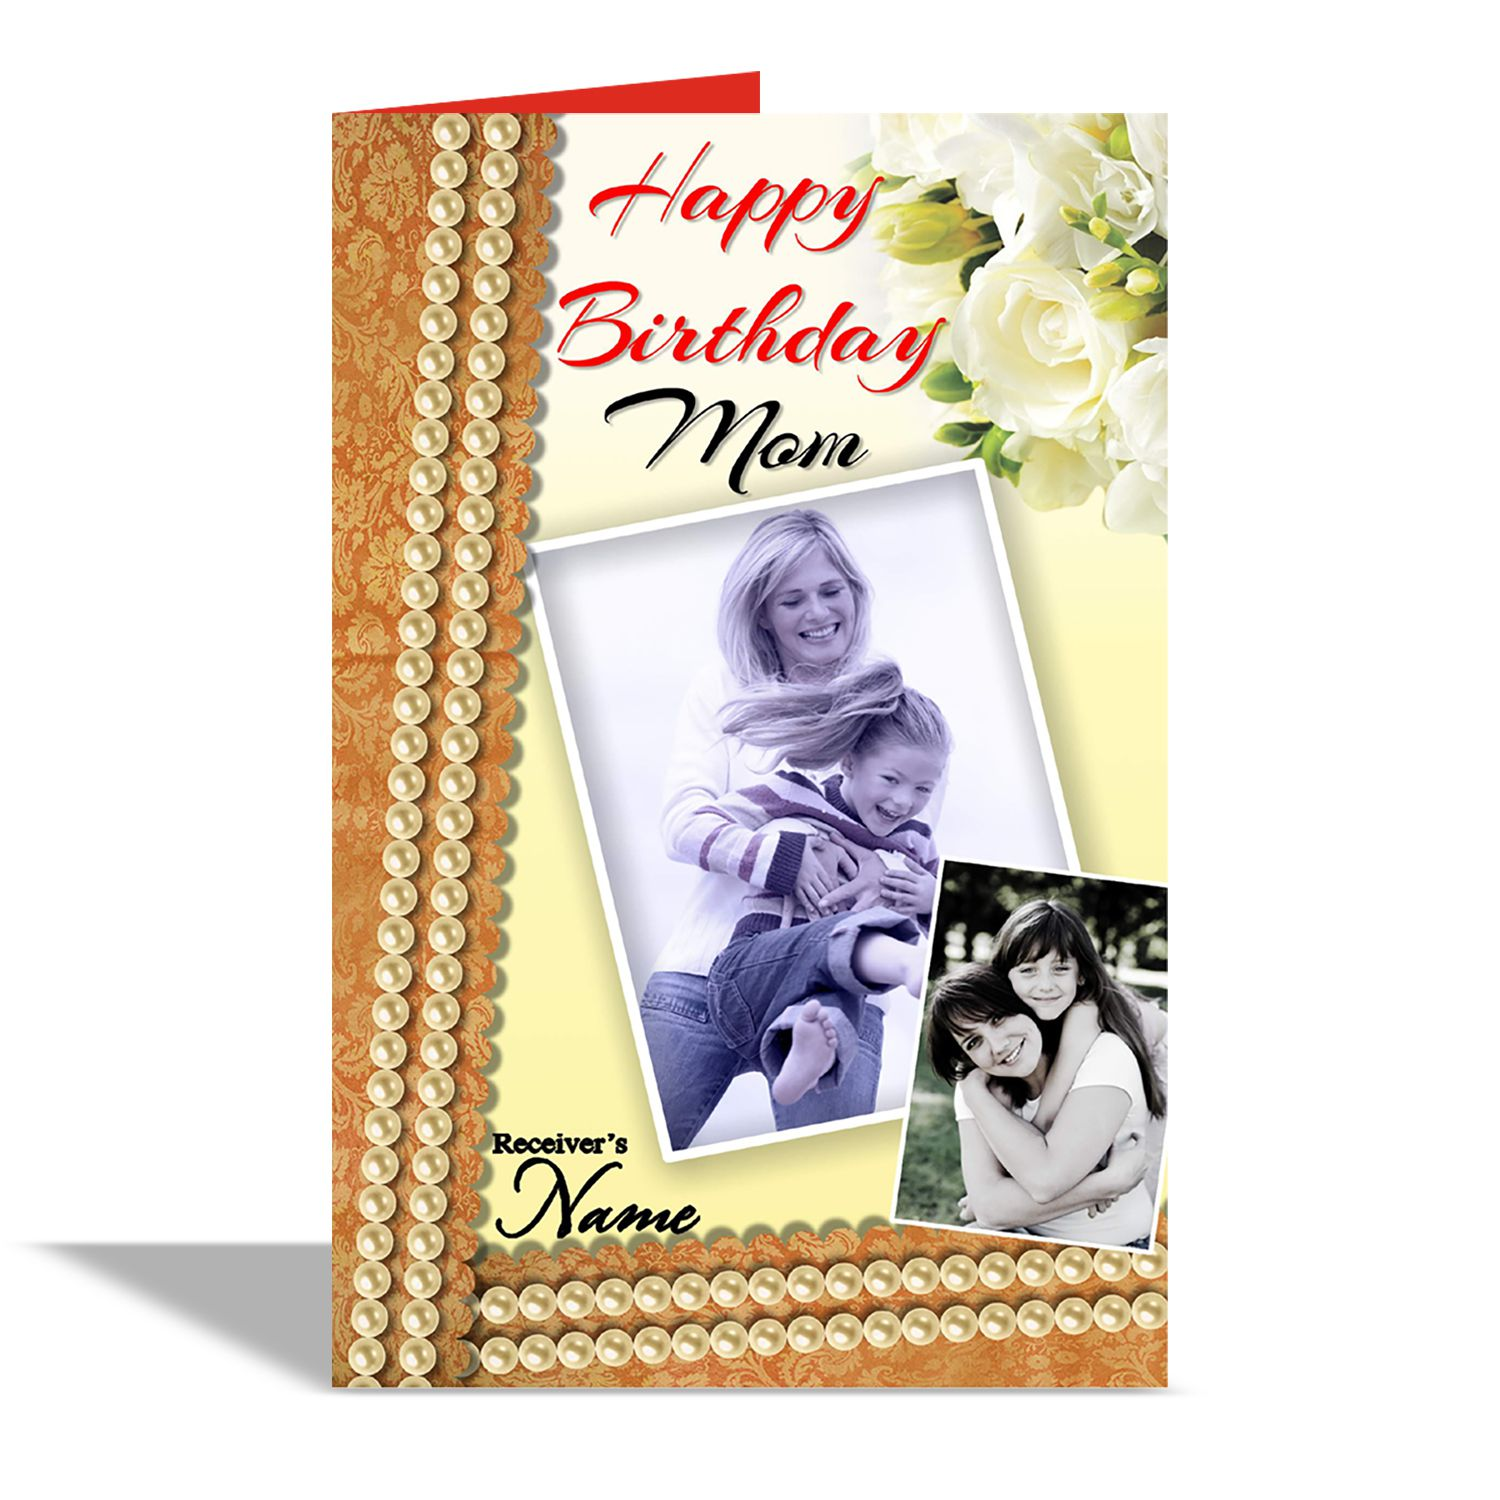 Alwaysgift Happy Birthday Mom Greeting Card Buy Online At Best Price In India